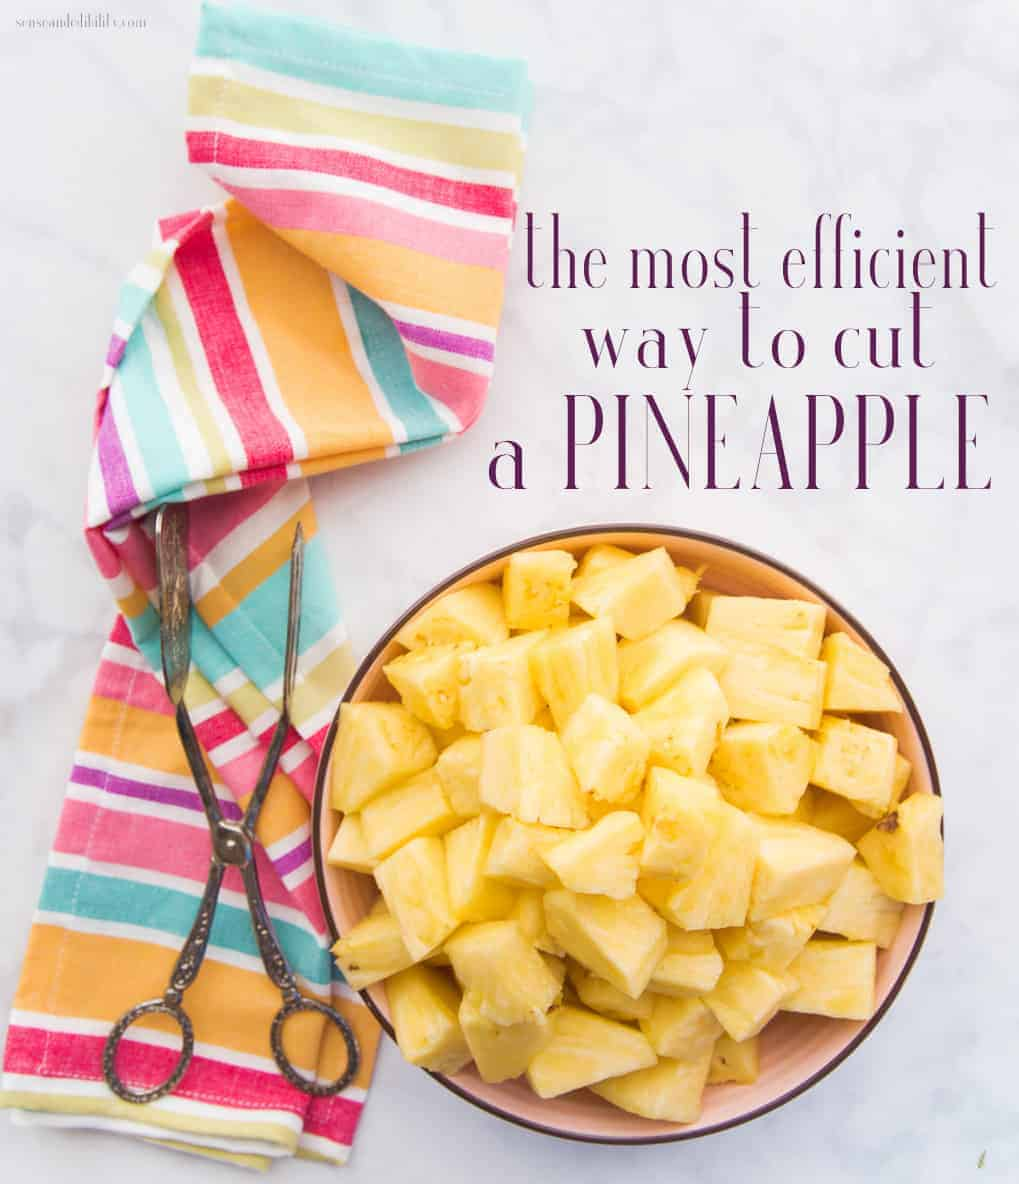 Pineapples are not only sweet, but are high in vitamin C as well. Learn the most efficient way to cut a fresh pineapple, then use the fruit of your labor in all of your favorite dishes. #knifeskills #cutting101 #pineapple #onlineculinaryclass #kitchenfundamentals via @ediblesense